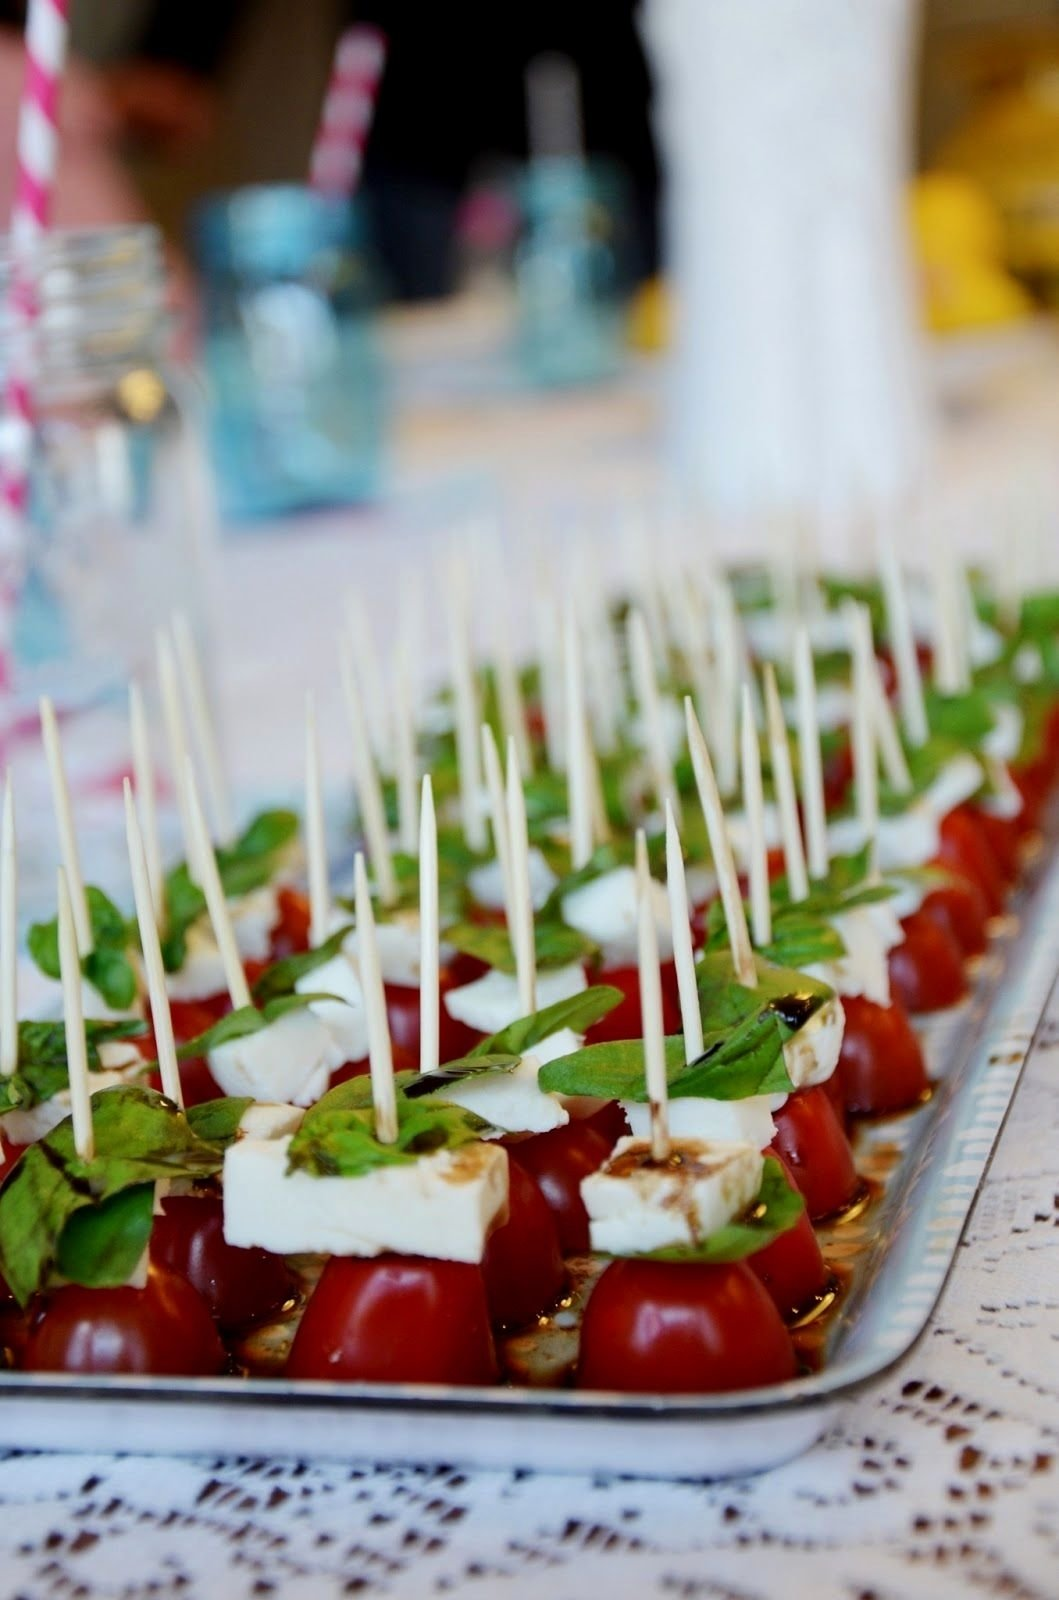 10 Wonderful Ideas For A Dinner Party dinner theme party ideas decorating of party 2020